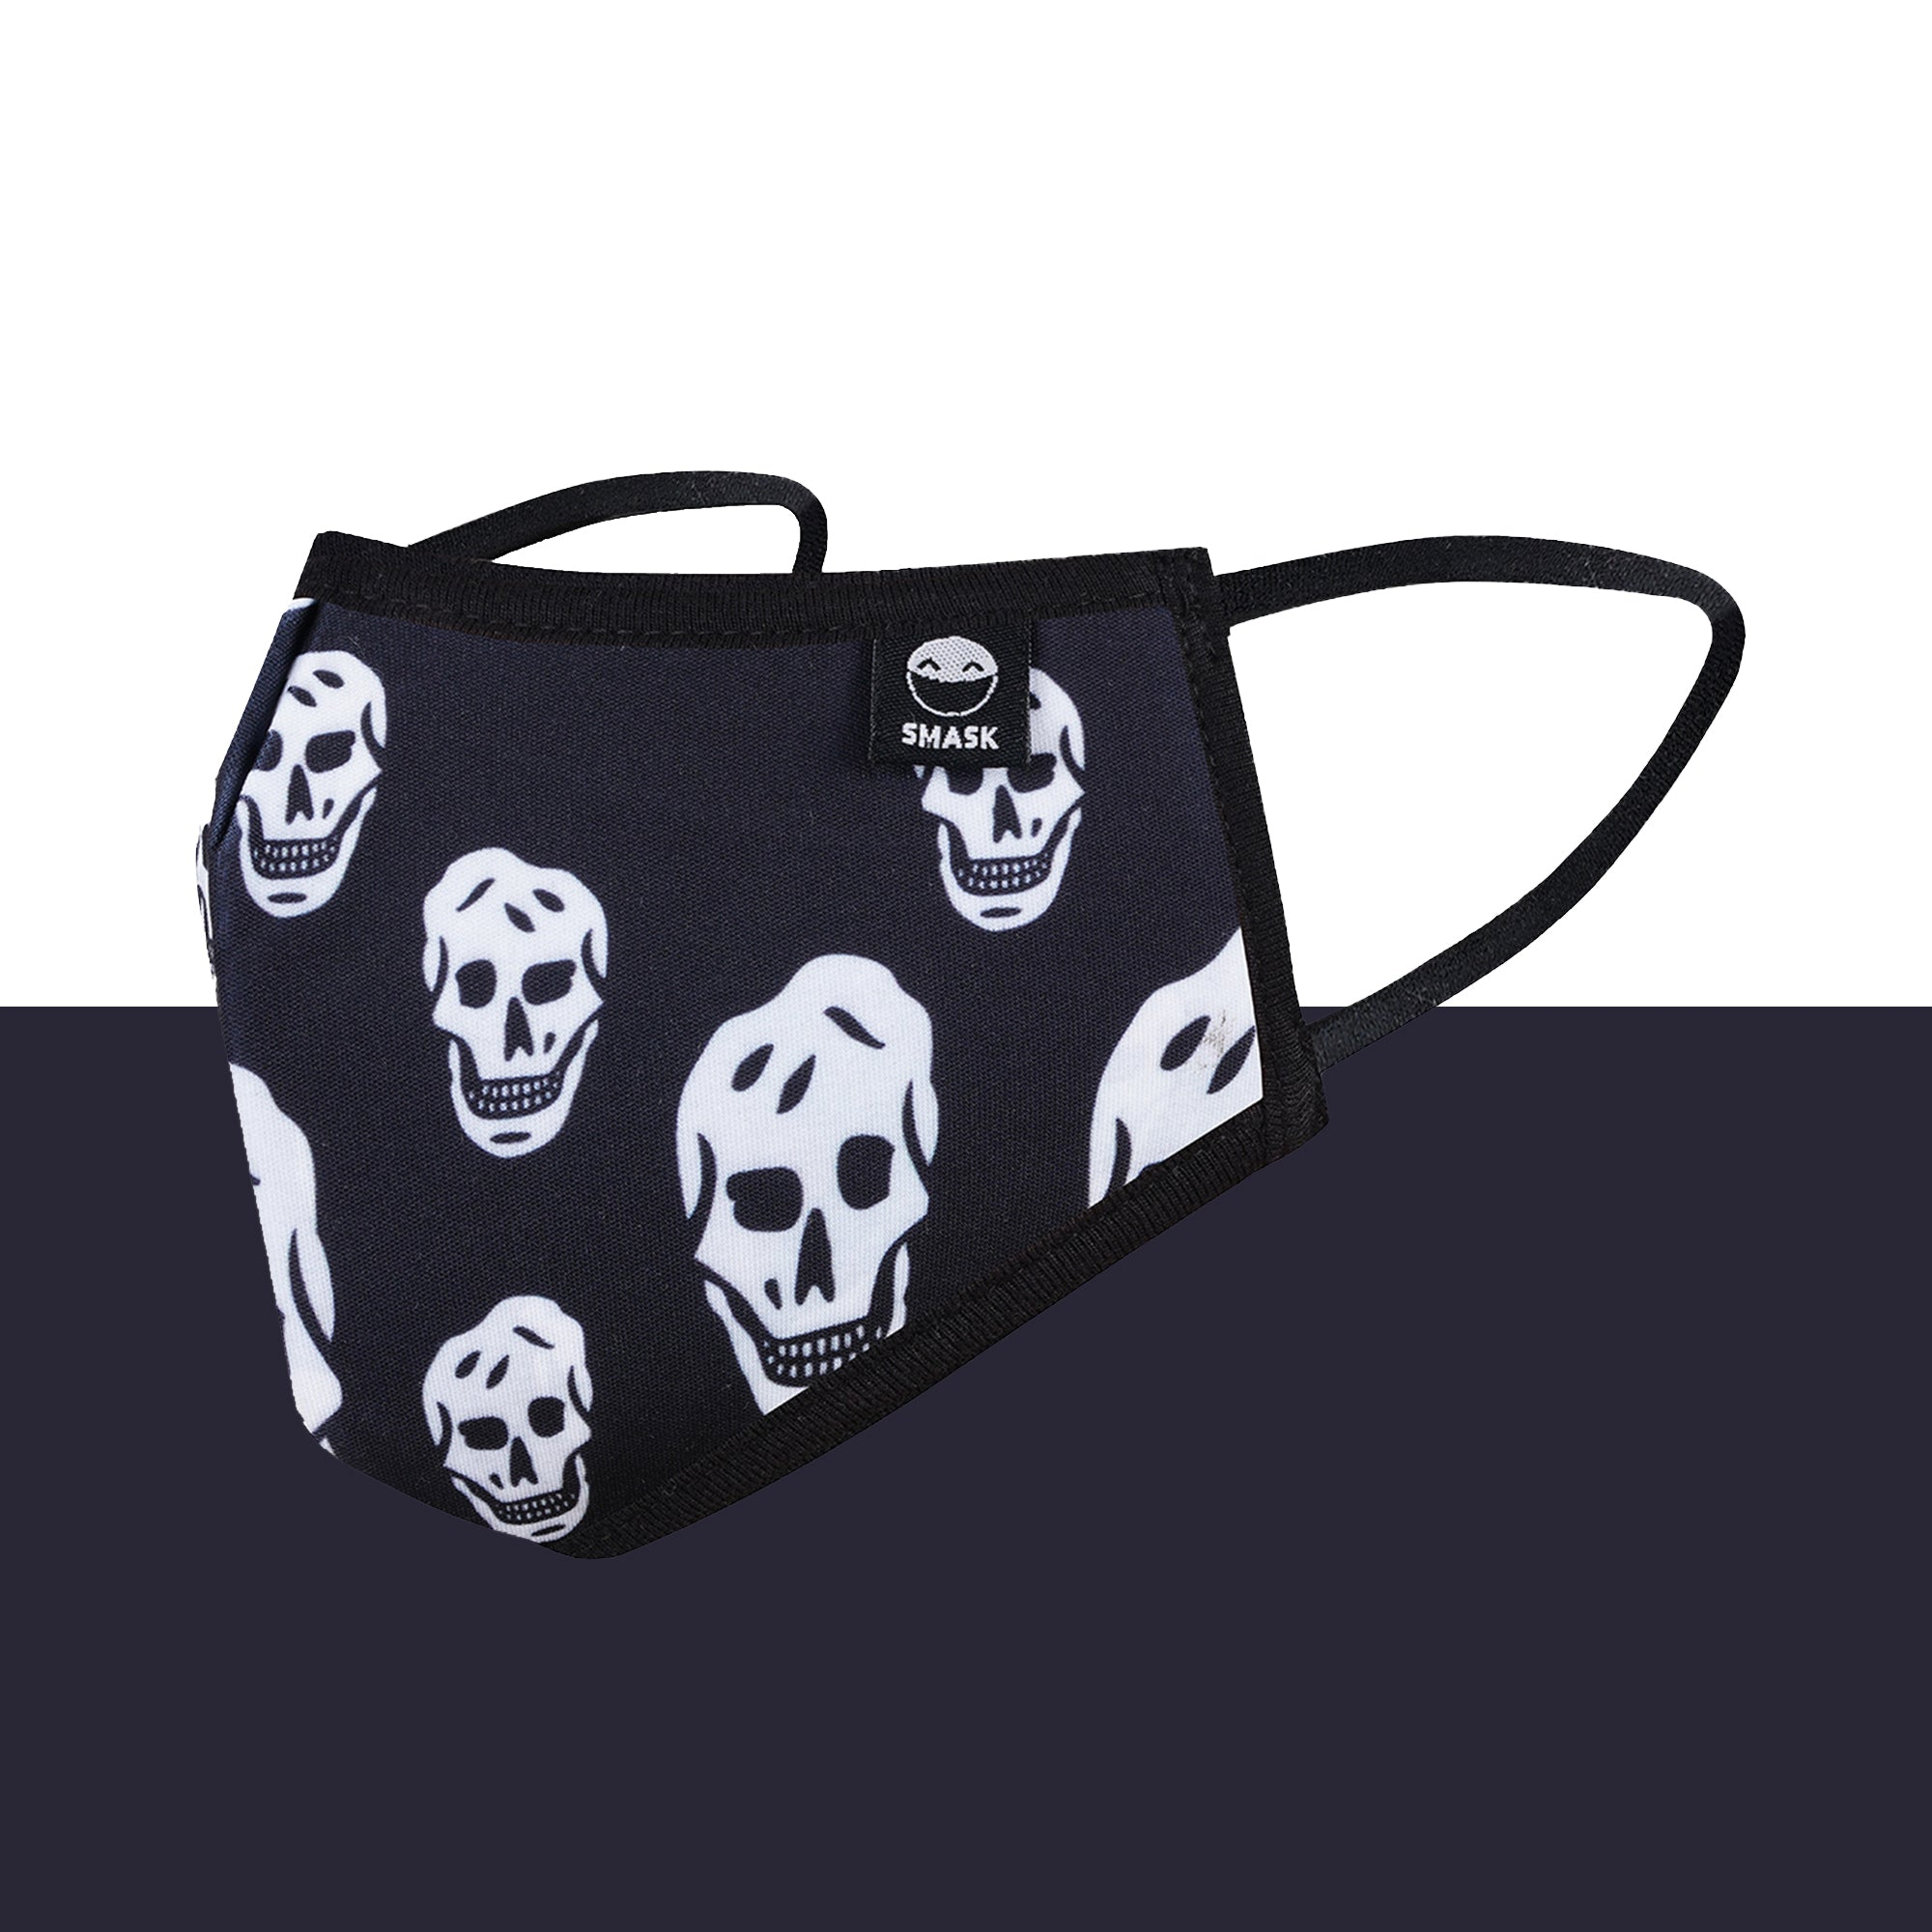 Limited Edition - Halloween Smask - SKULL